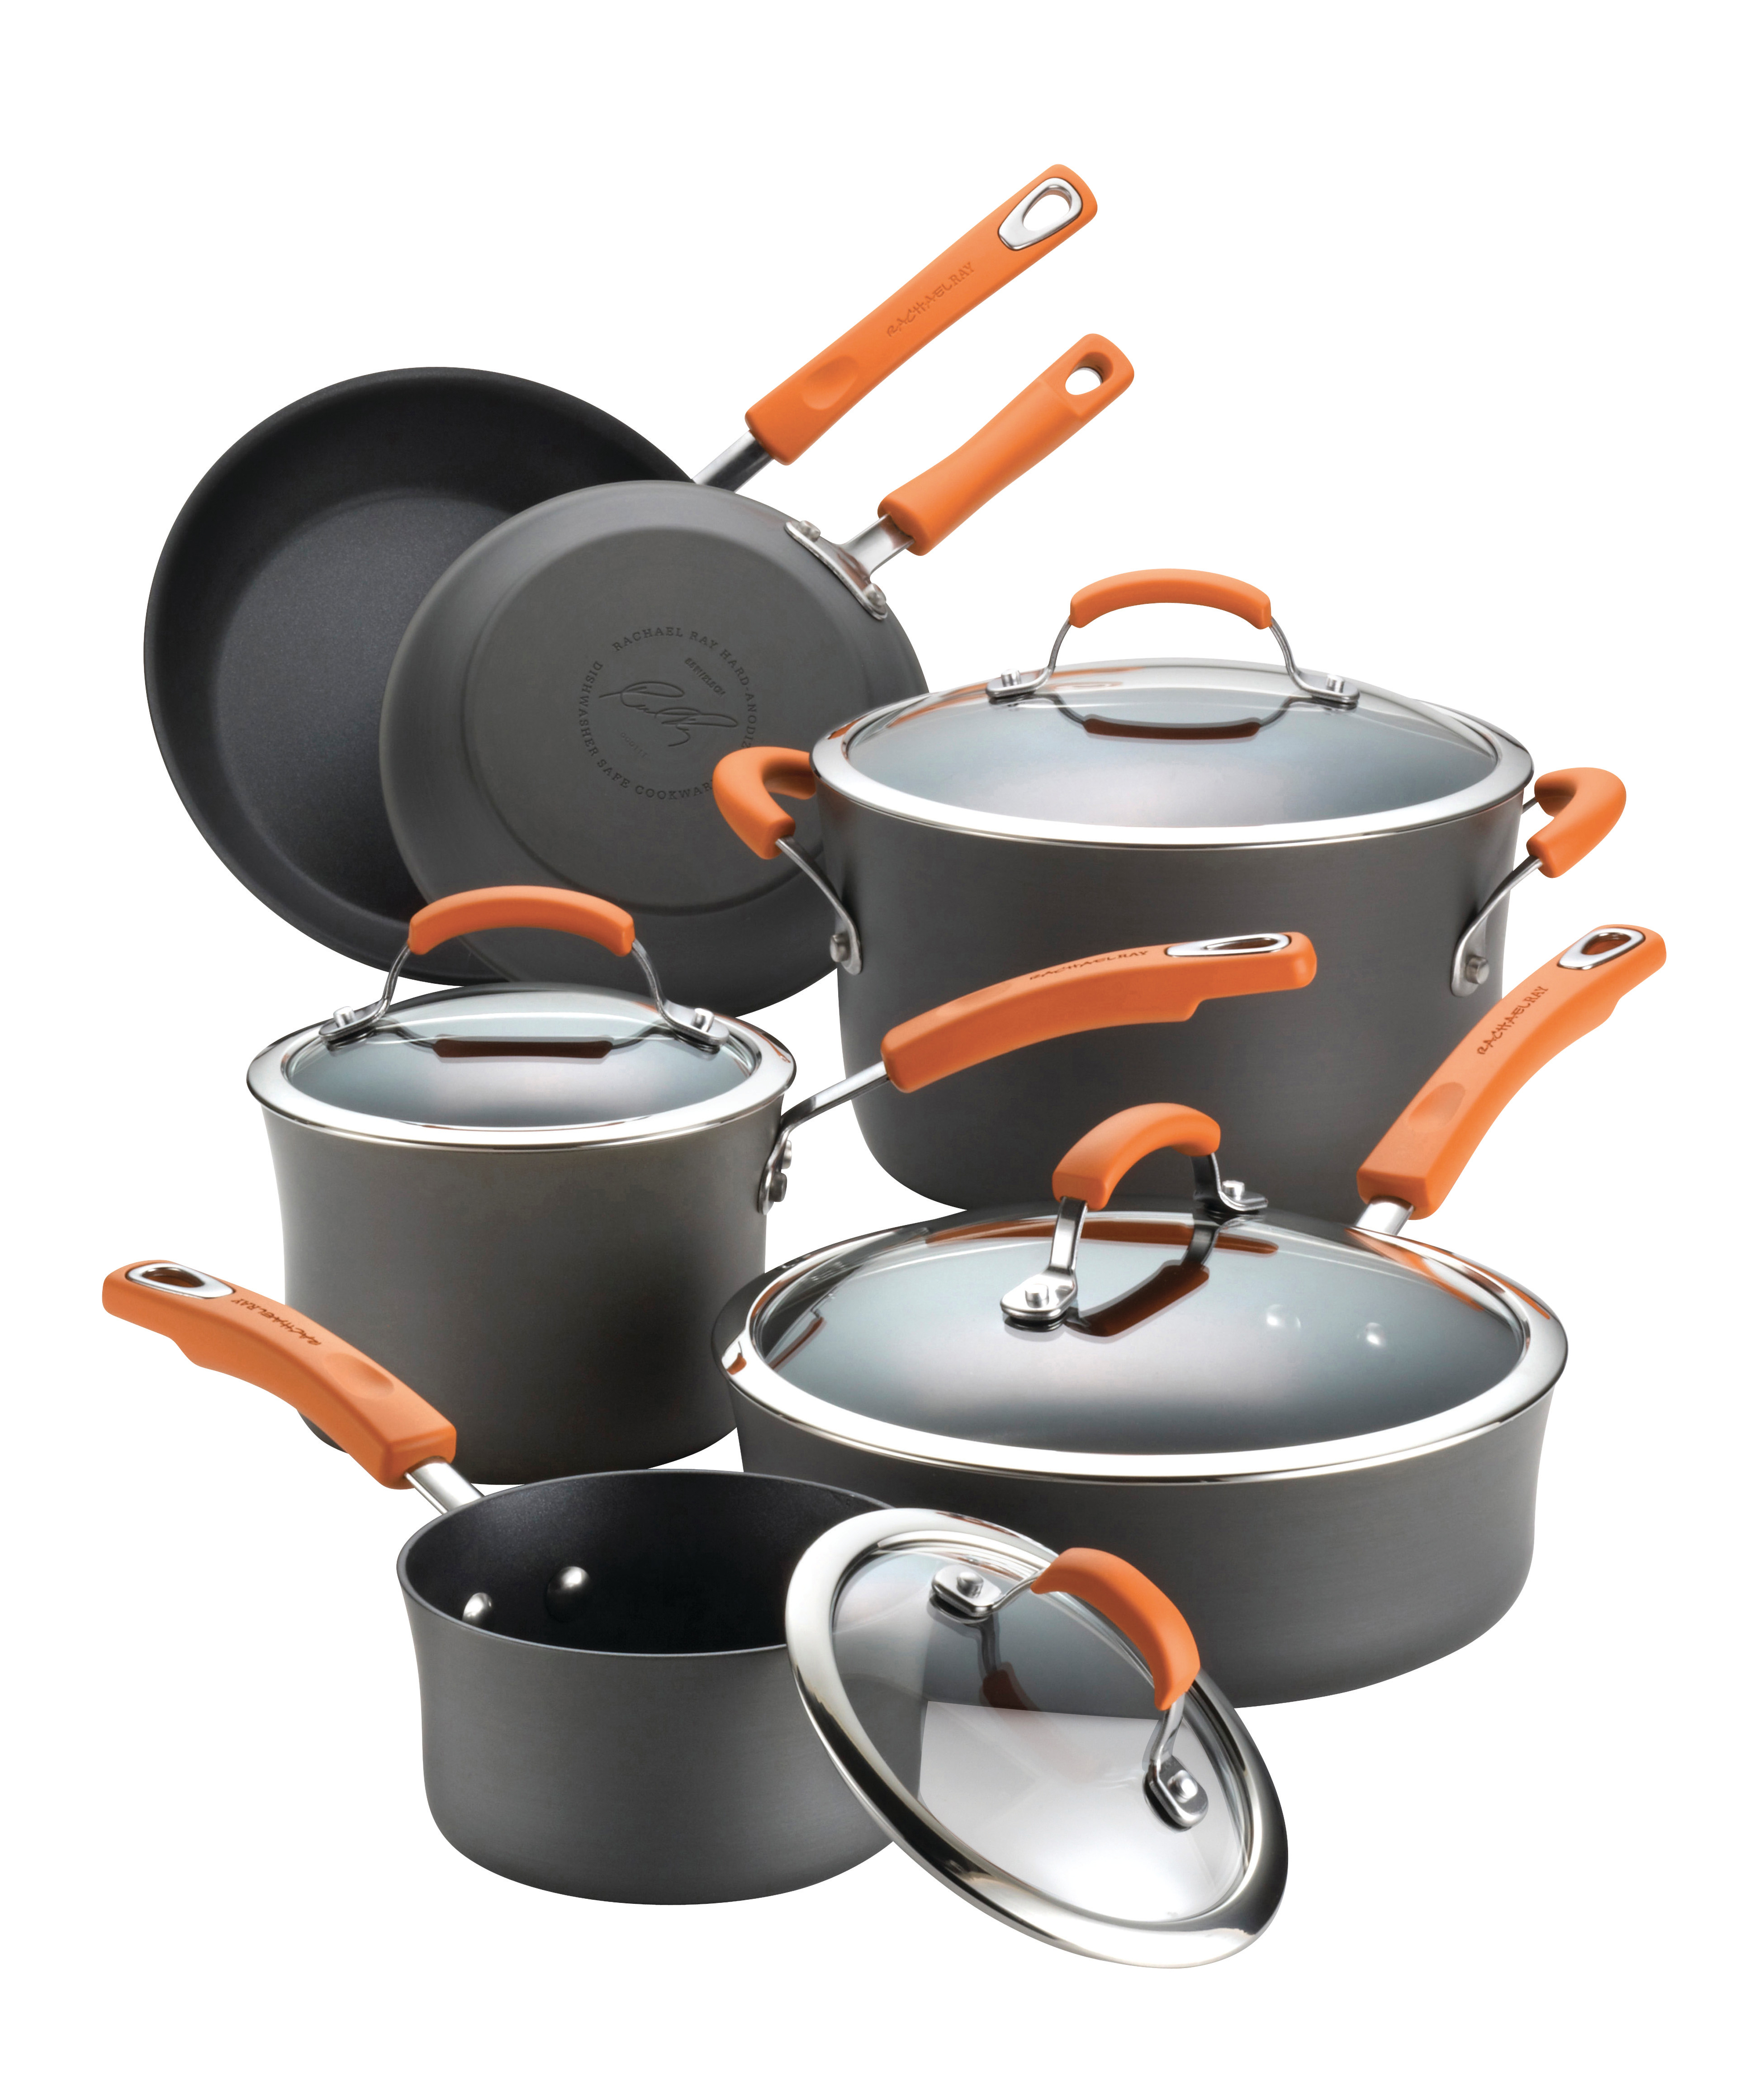 Rachael Ray Hard-Anodized II 10-Piece Cookware Set, Gray with Orange Handles PartNumber: 00820438000P